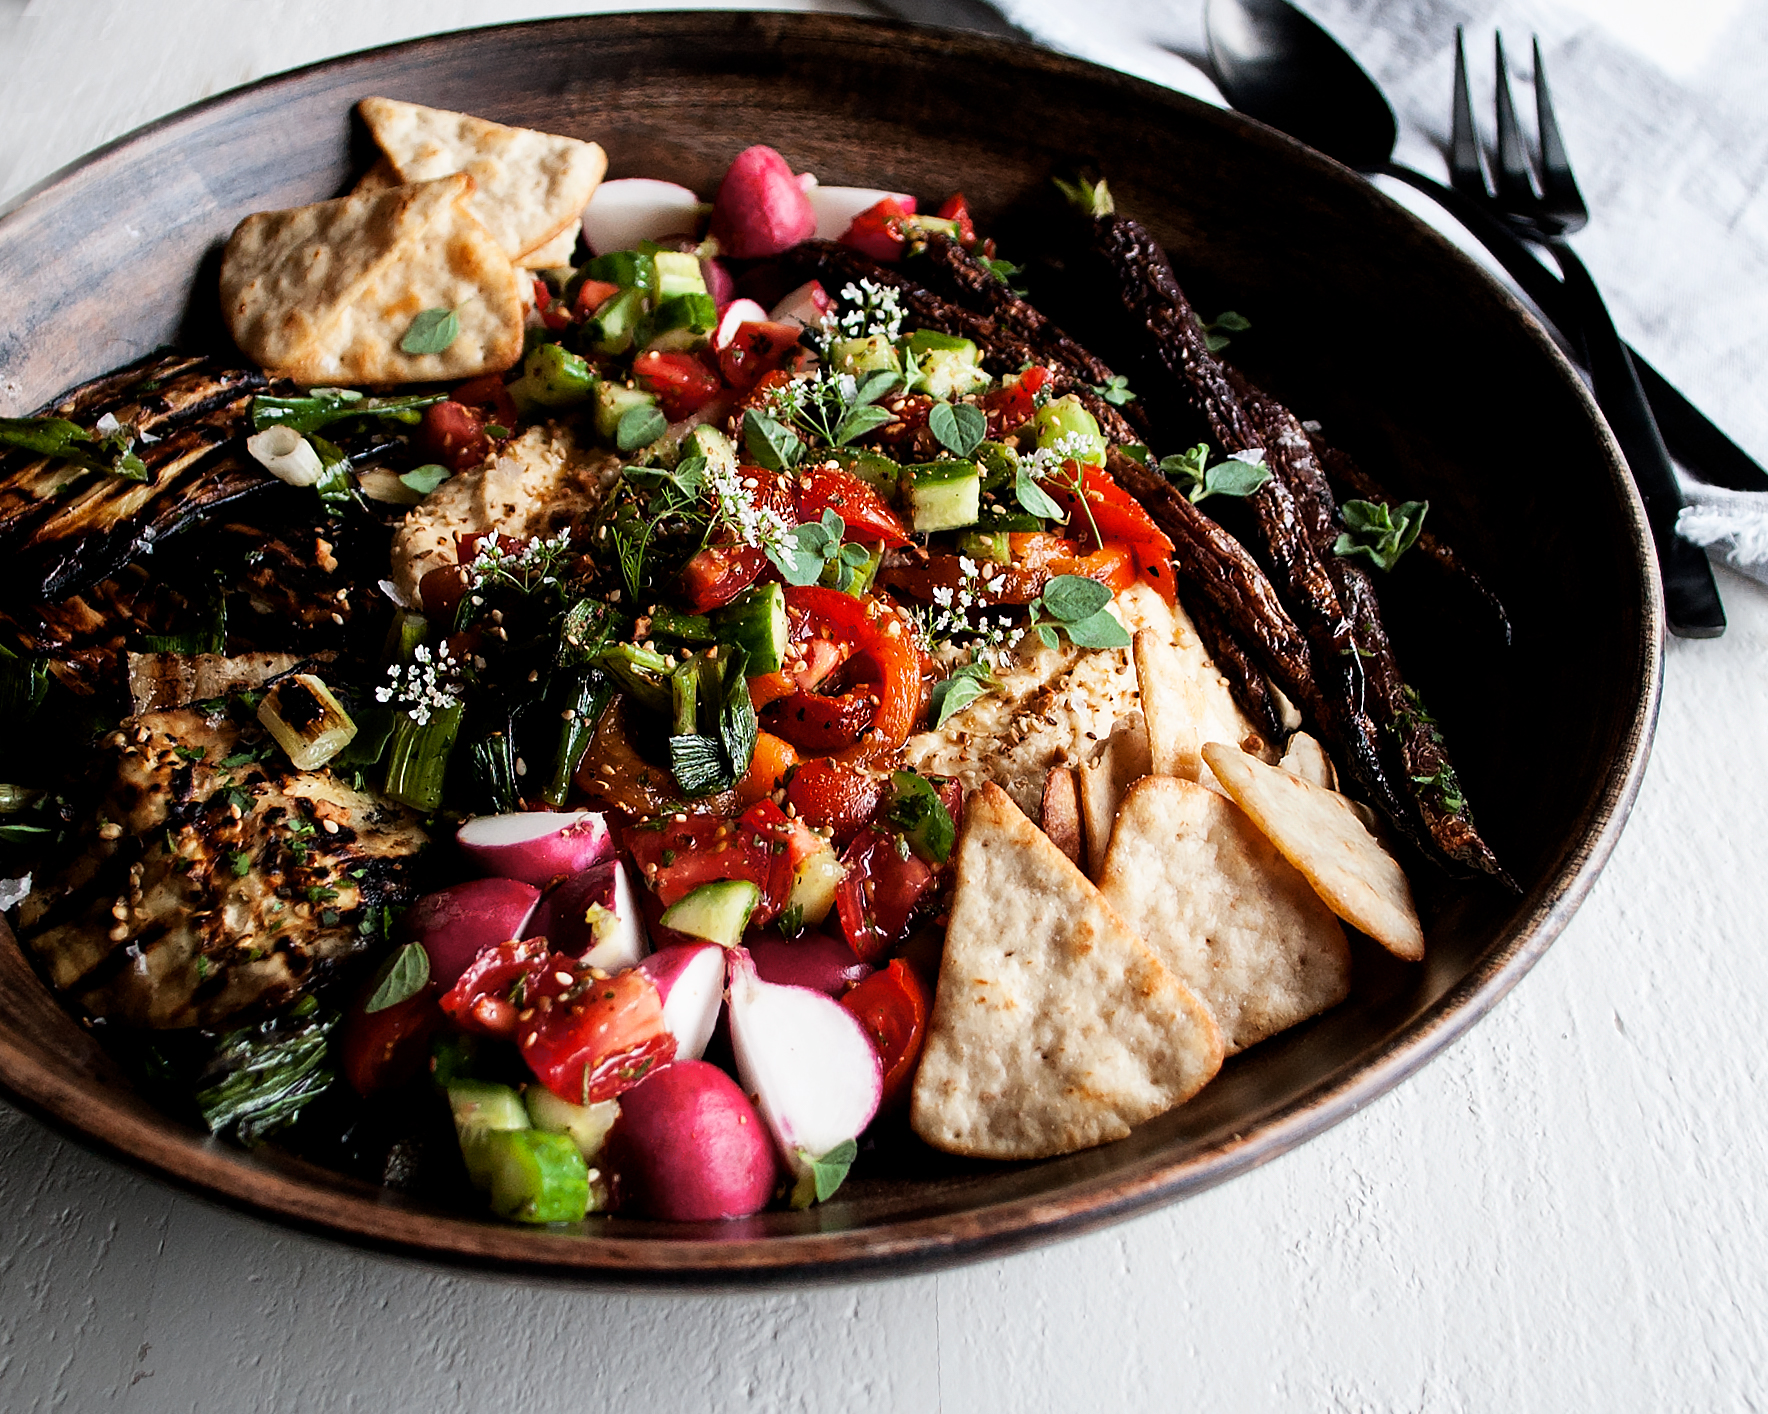 Grilled Vegetable Hummus with Herbs & Olive Oil - The Original Dish